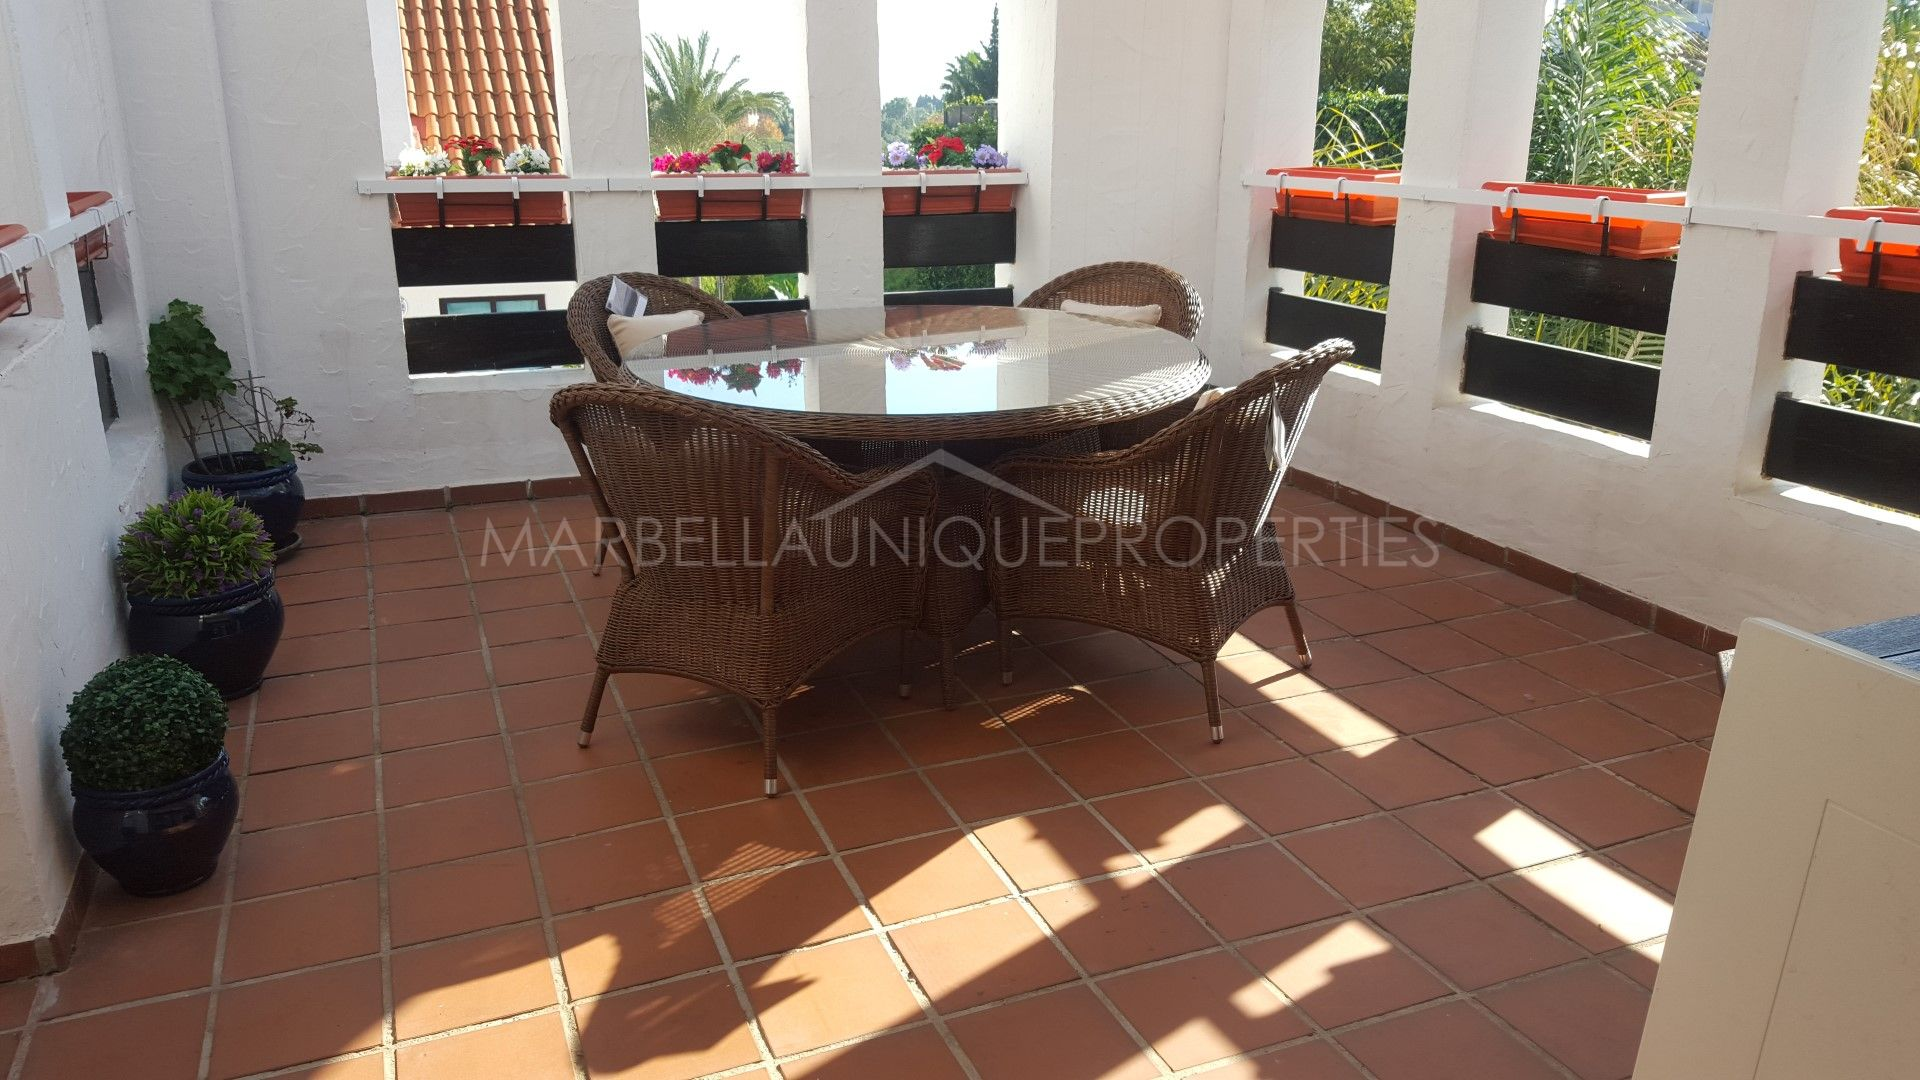 LOVELY 2 BEDROOM APARTMENT IN NUEVA ANDALUCIA